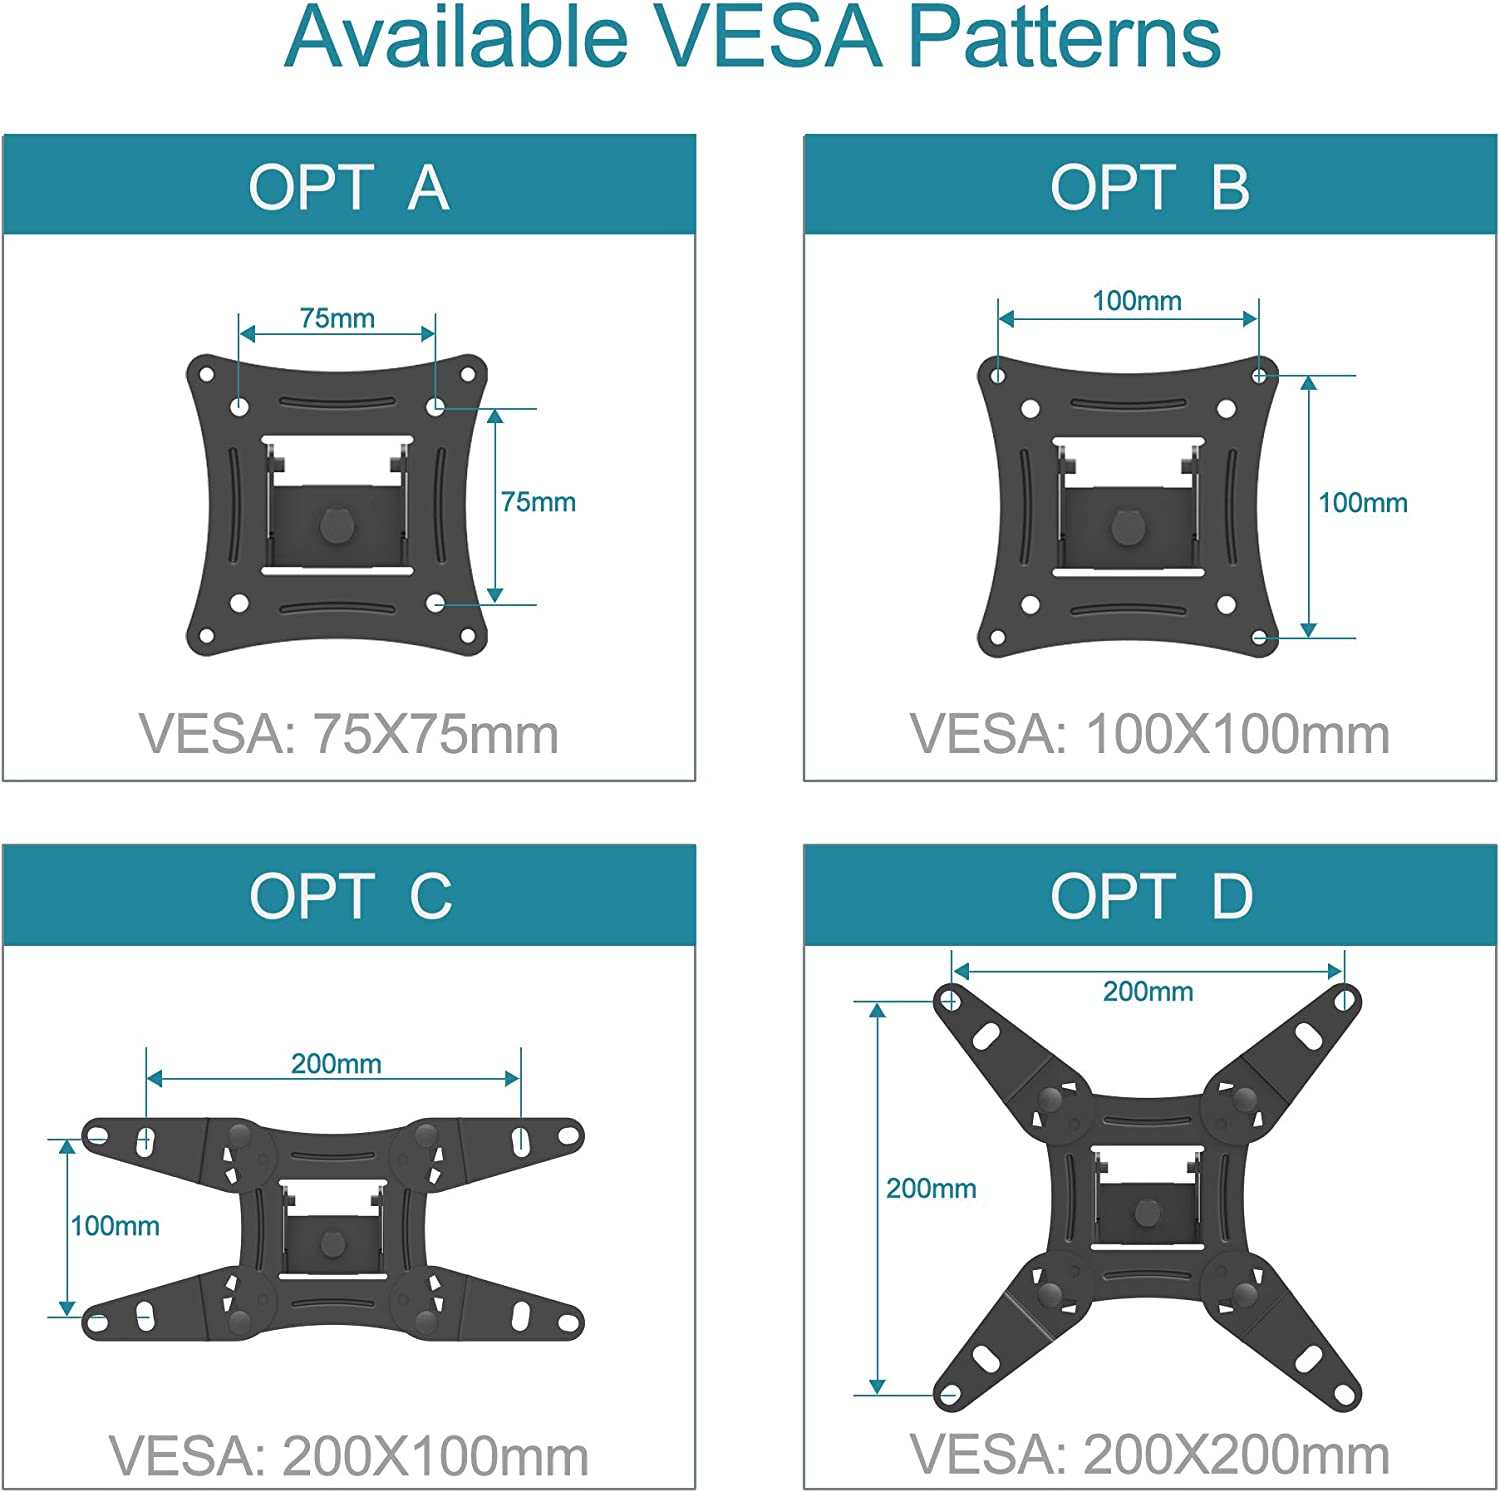 EVERVIEW Full Motion TV Monitor Wall Mount Bracket Articulating Arms Swivel Tilt Extension Rotation for Most 13-40 Inch LED LCD Flat Curved Screen Monitors & TVs, Max VESA 200x200mm up to 44lbs